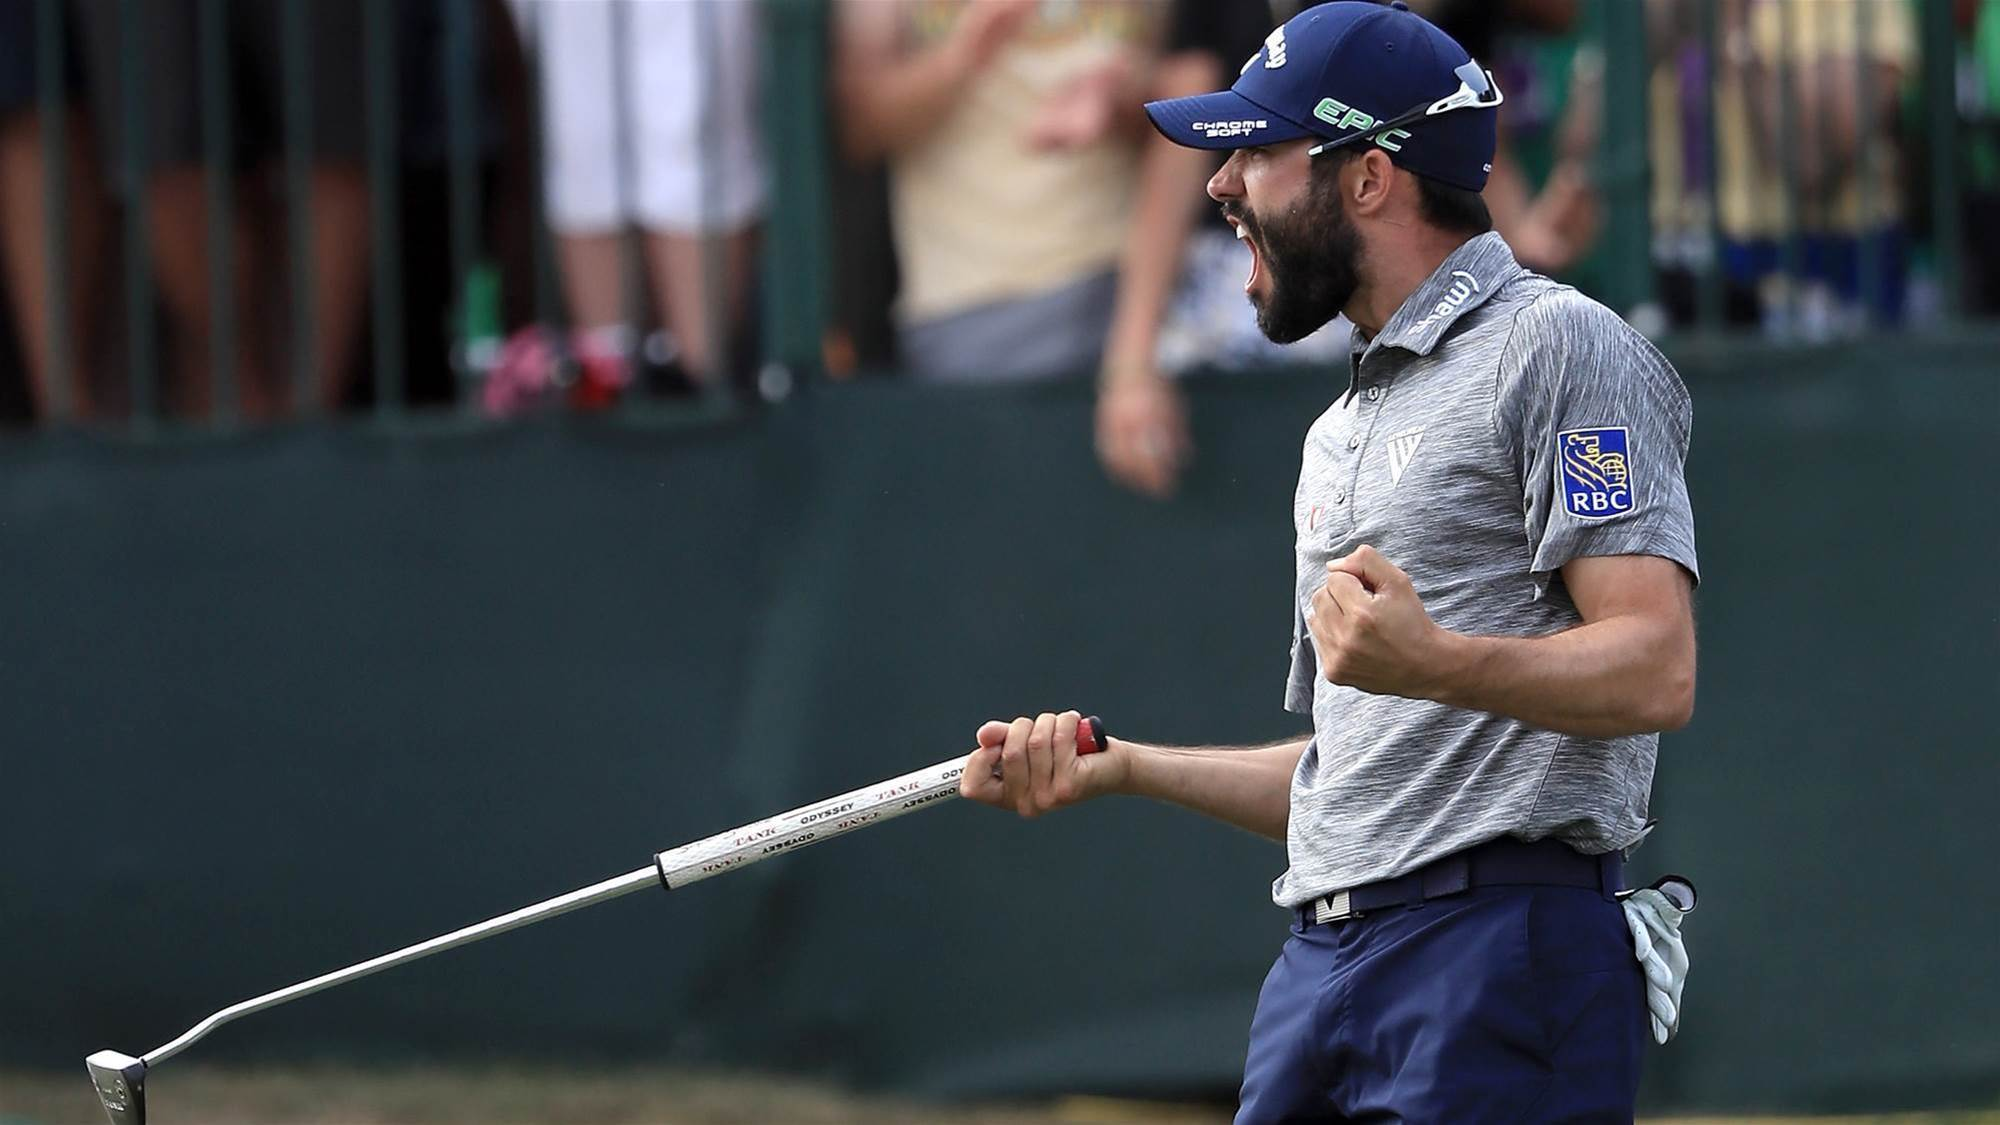 PGA TOUR: Honeymoon can wait as Hadwin gets Masters start